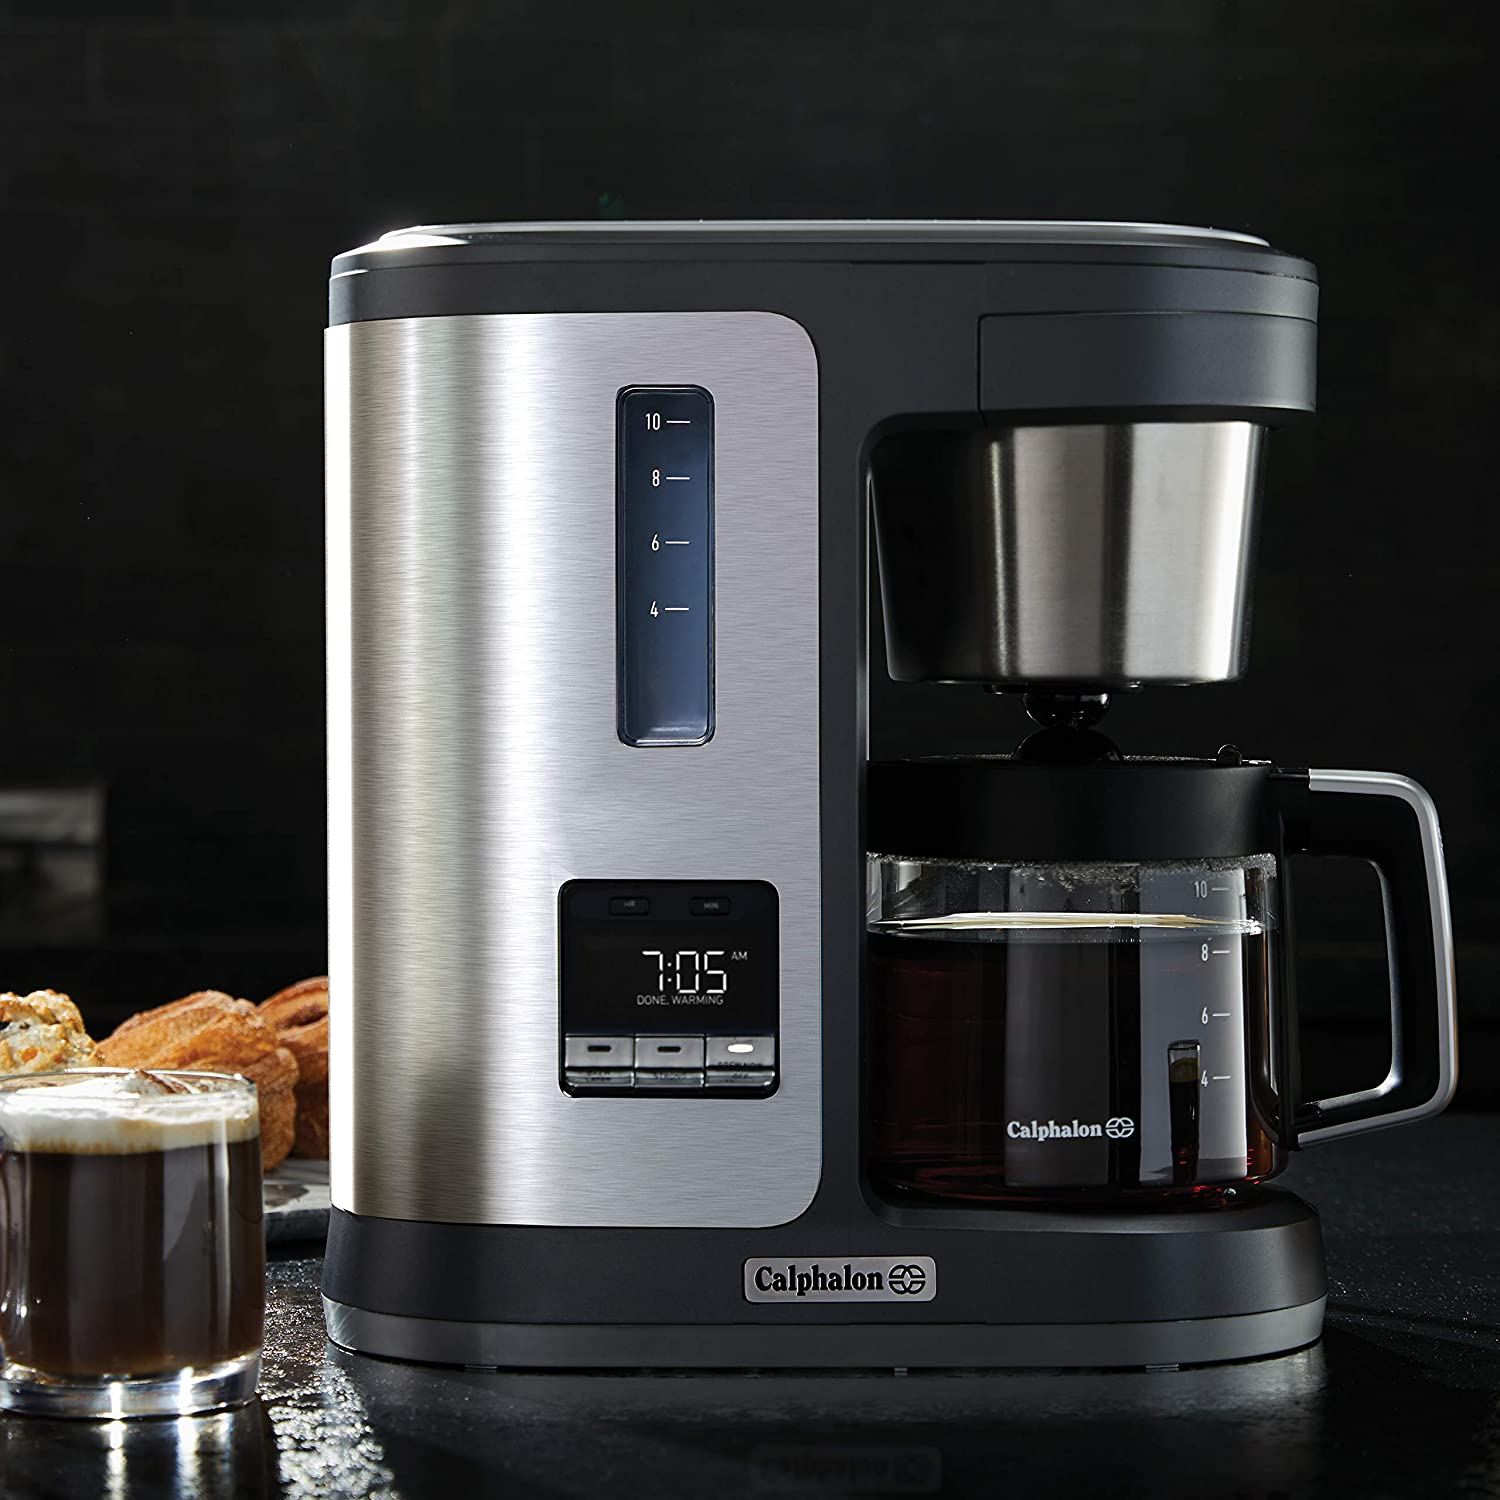 Calphalon Coffee Maker ONLY $1...